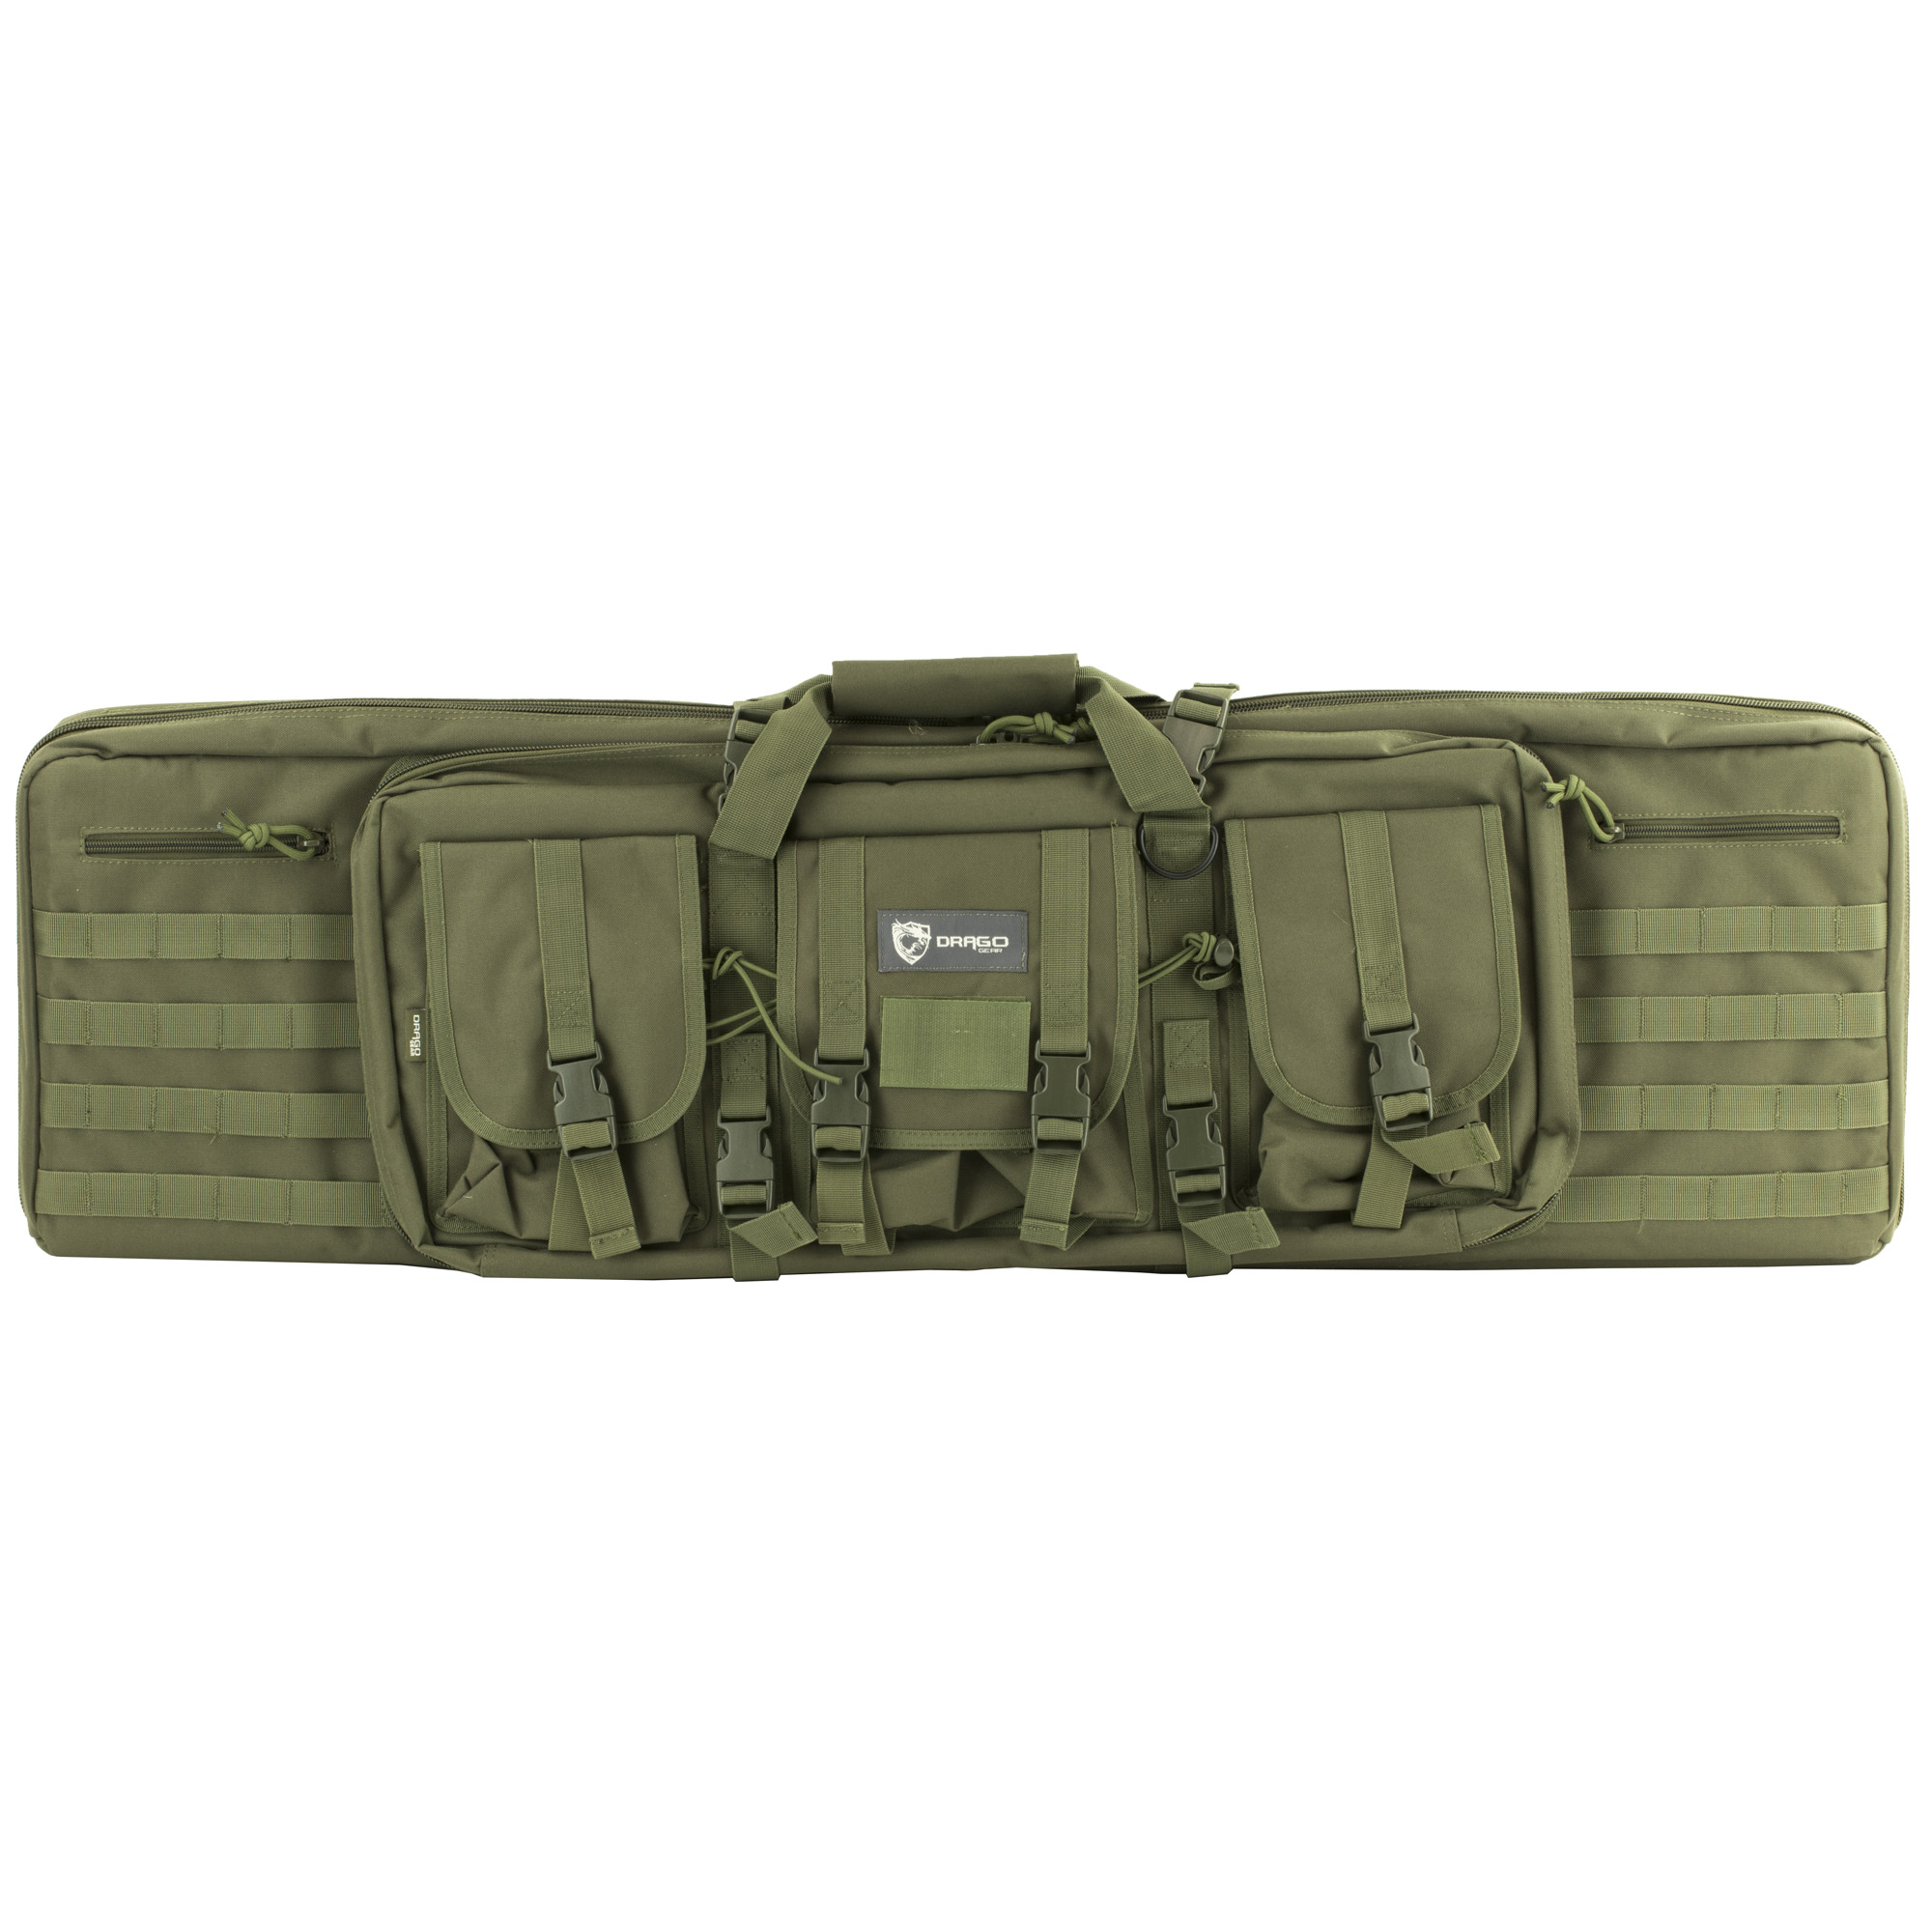 """Drago Tactical Weapon Cases are designed to optimally secure and protect long guns"""" and come equipped with multiple storage areas to efficiently organize ammunition and accessories."""